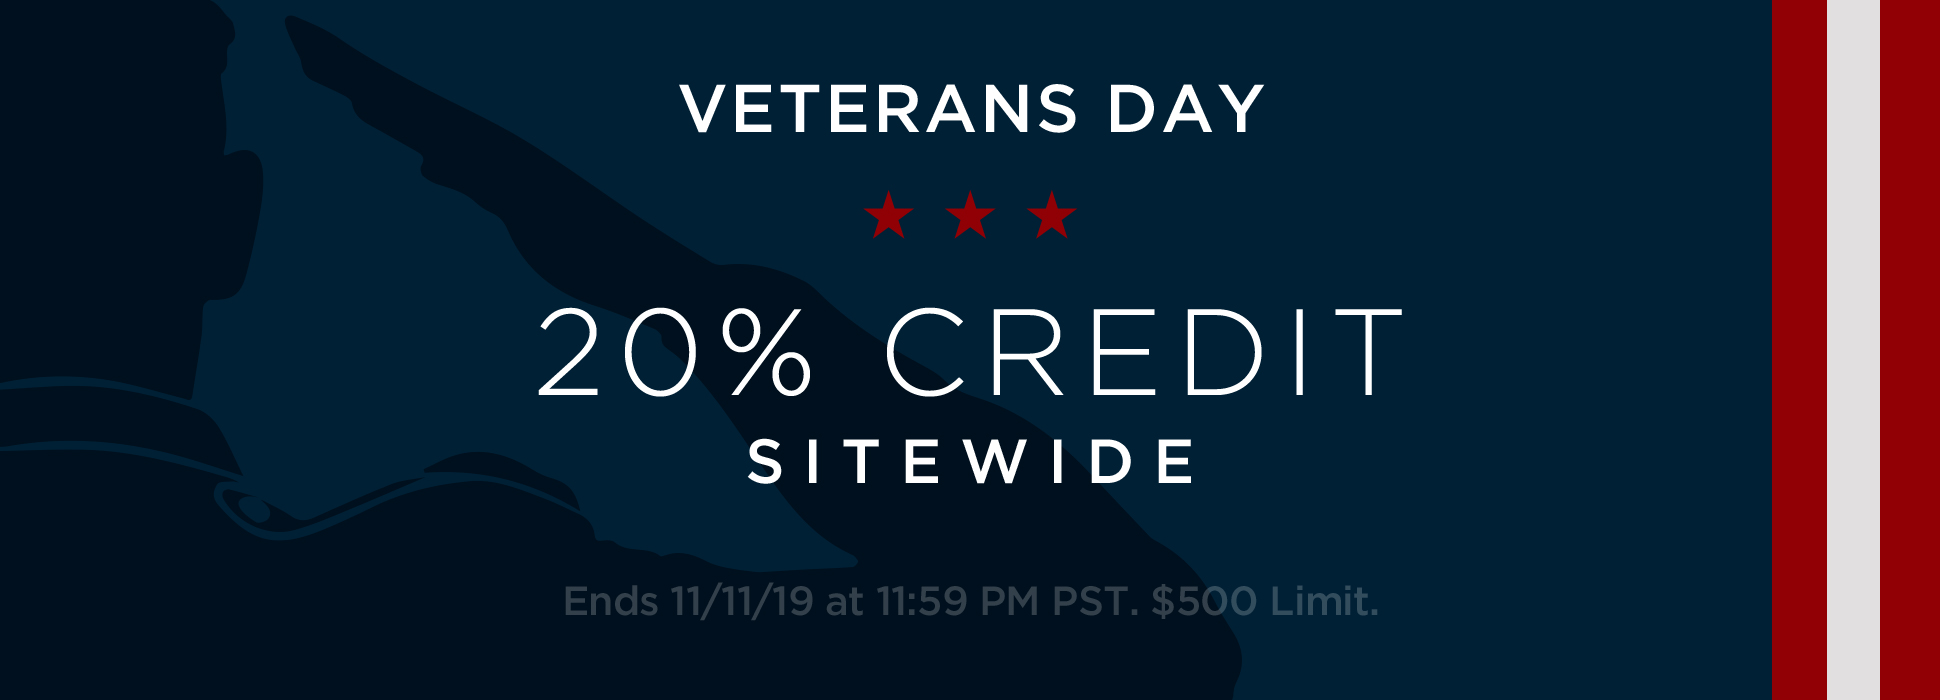 Veteran's Weekend 20% Credit - Day 3 (Promo + Banner)